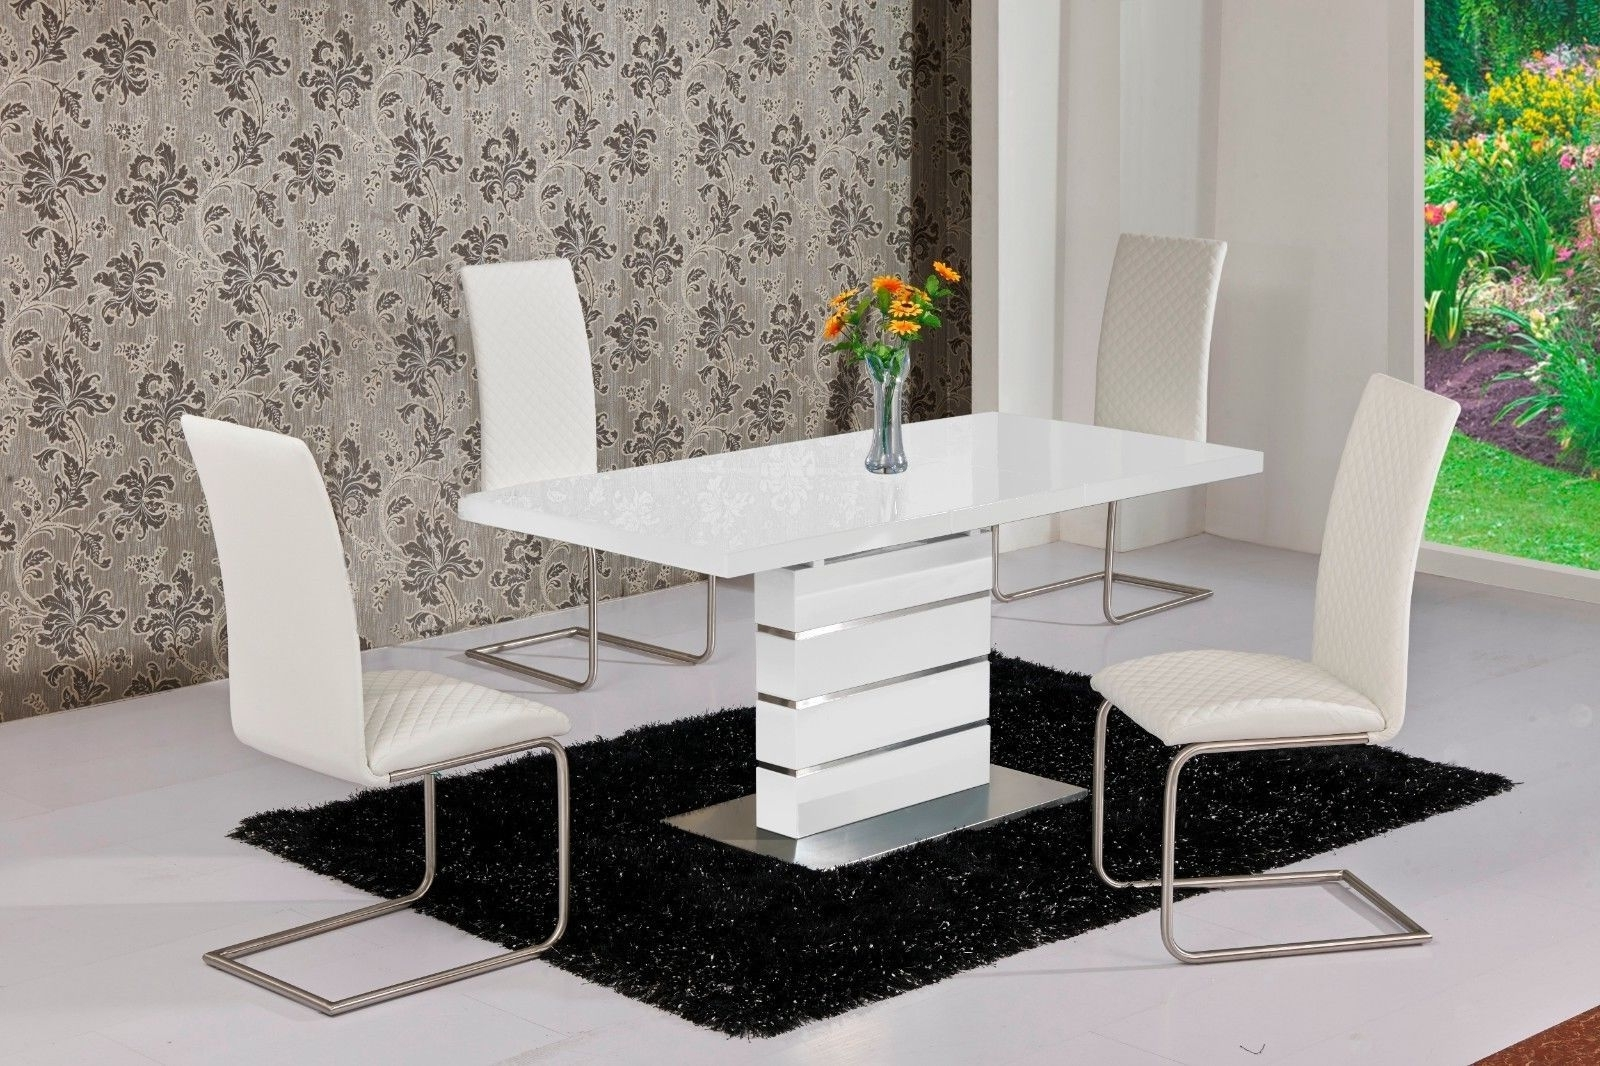 Mace High Gloss Extending 120 160 Dining Table & Chair Set – White In Most Current Hi Gloss Dining Tables (Gallery 4 of 25)